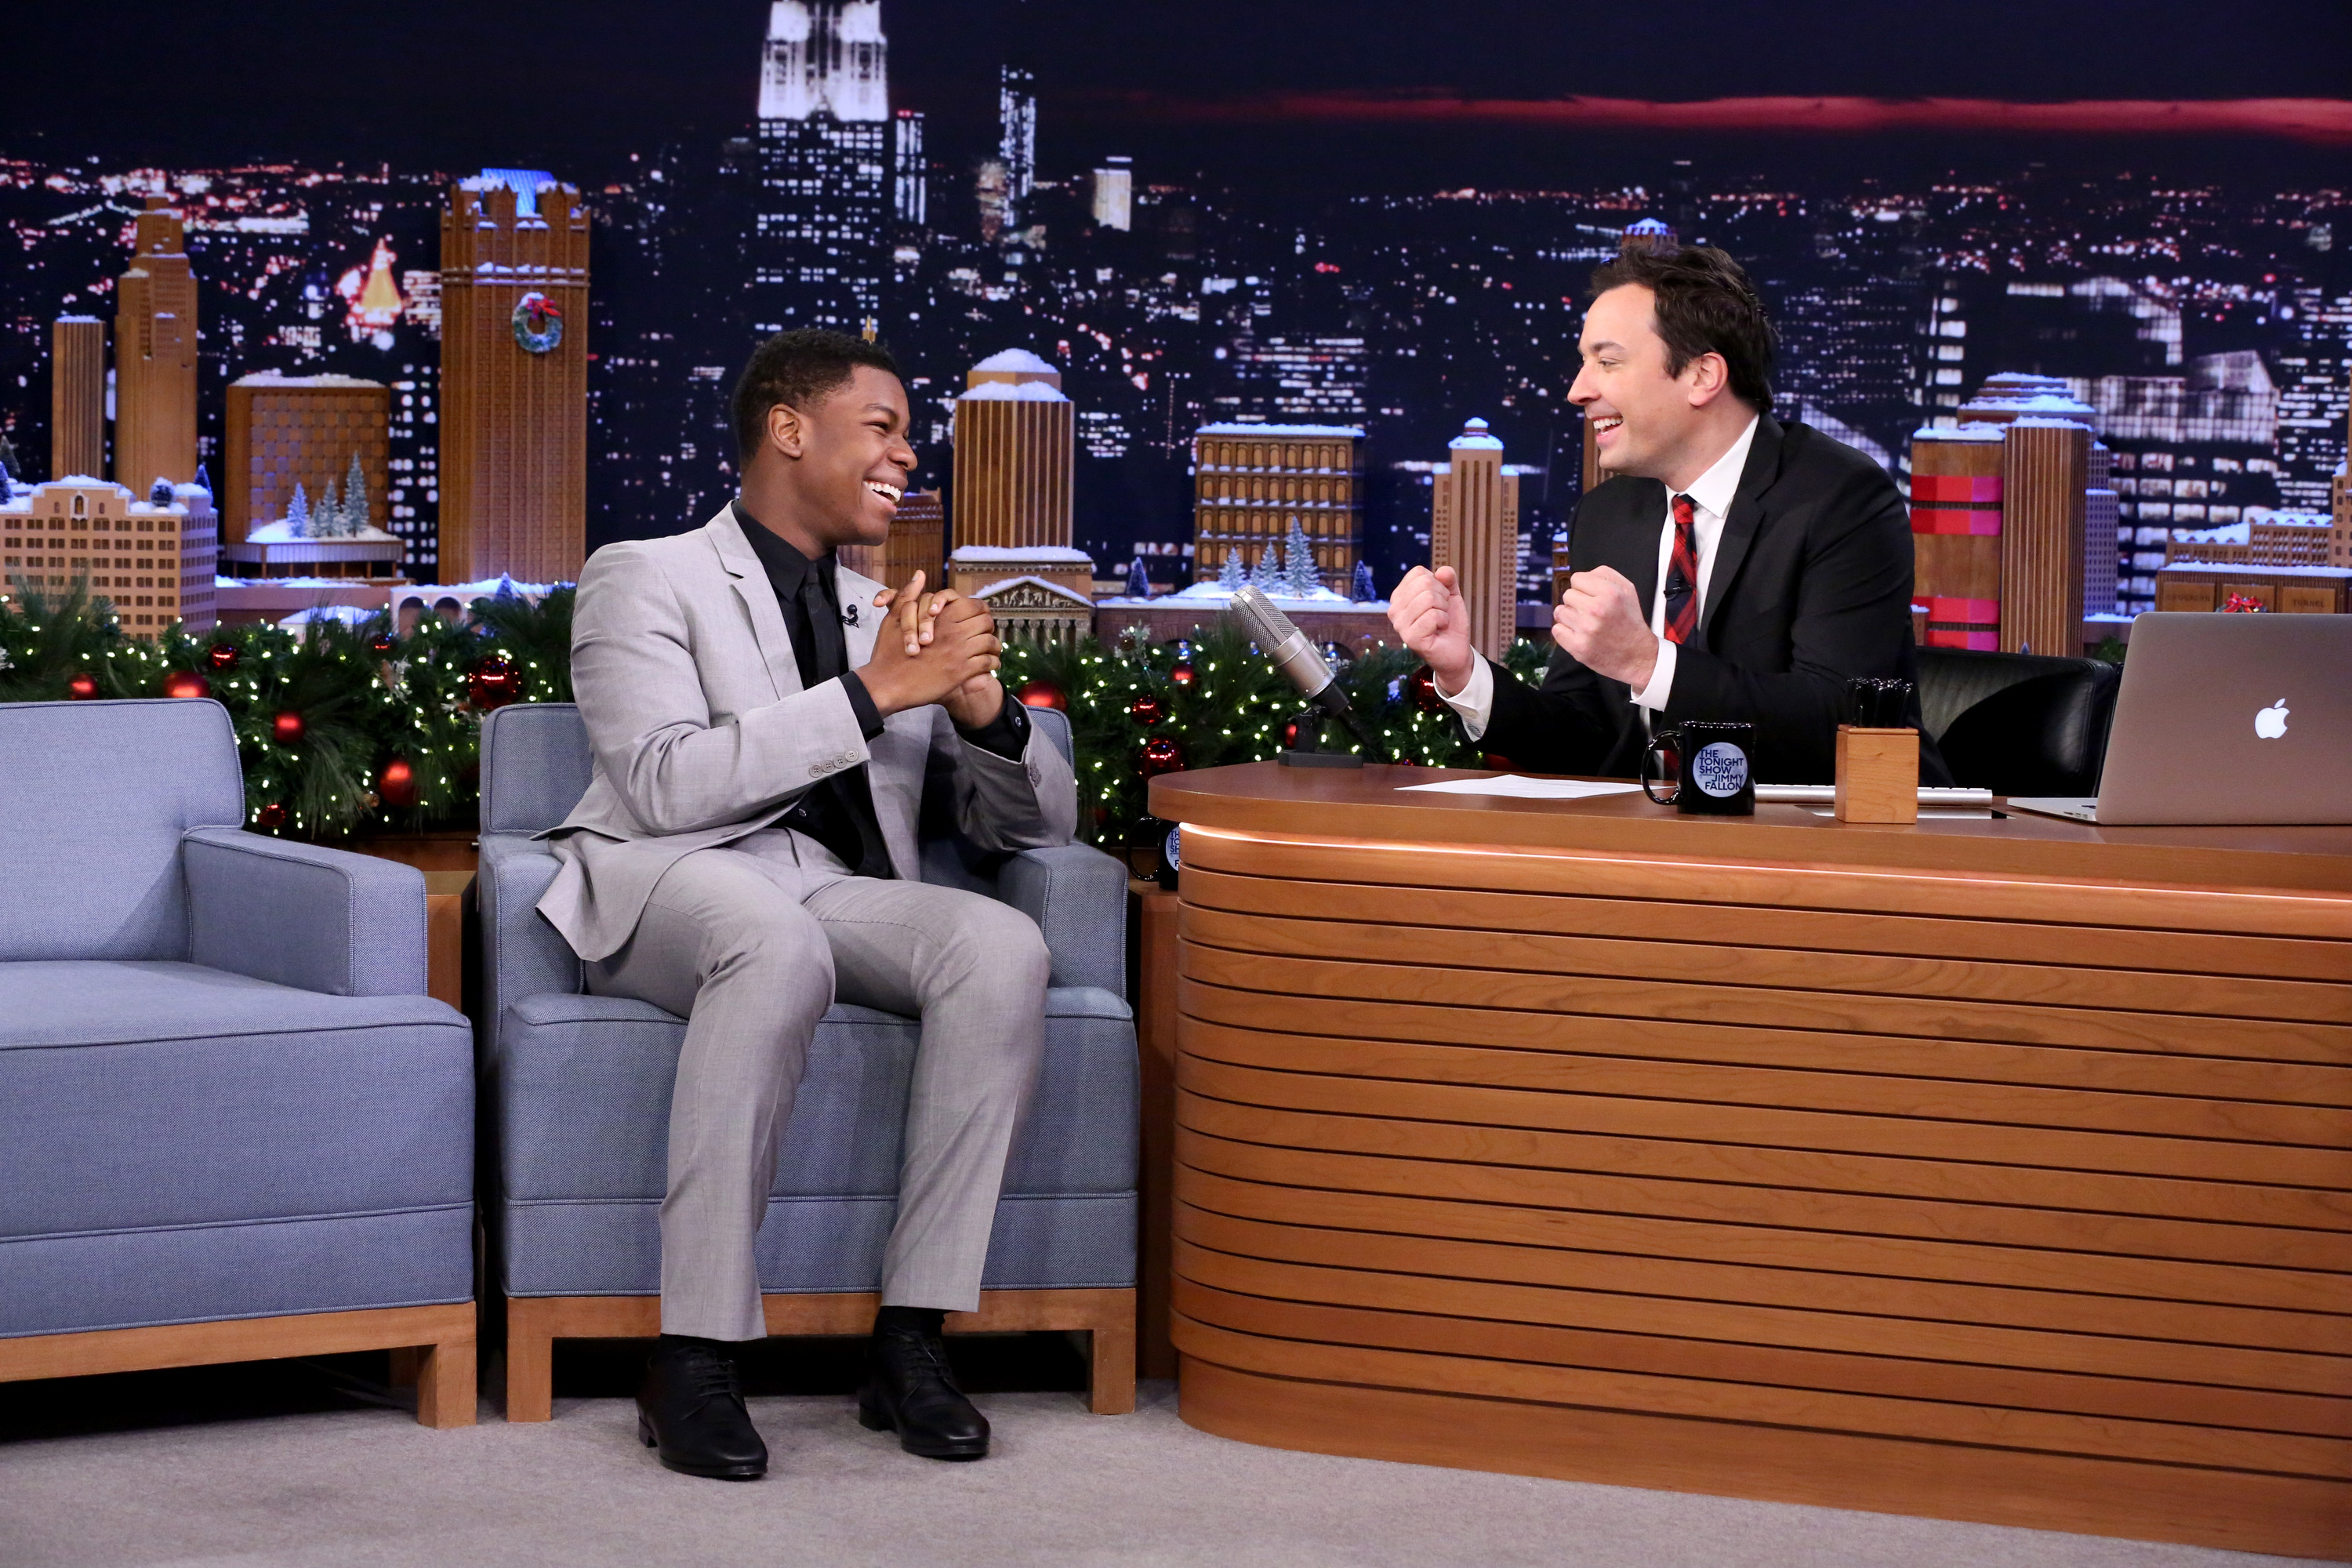 Actor John Boyega during an interview with host Jimmy Fallon on December 18, 2015